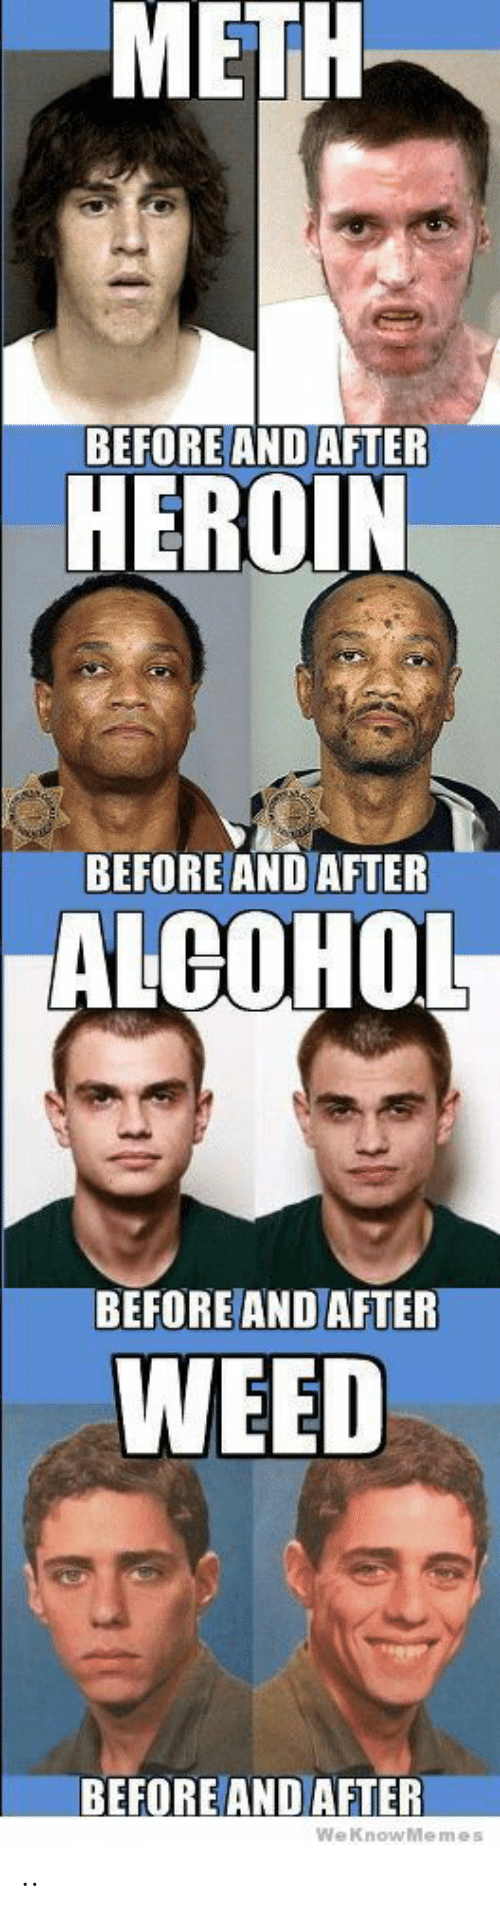 Weknowmemes: METH  BEFORE AND AFTER  HEROIN  BEFORE AND AFTER  ALCOHOL  BEFORE AND AFTER  WEED  BEFORE AND AFTER  WeKnowMemes  0 ..